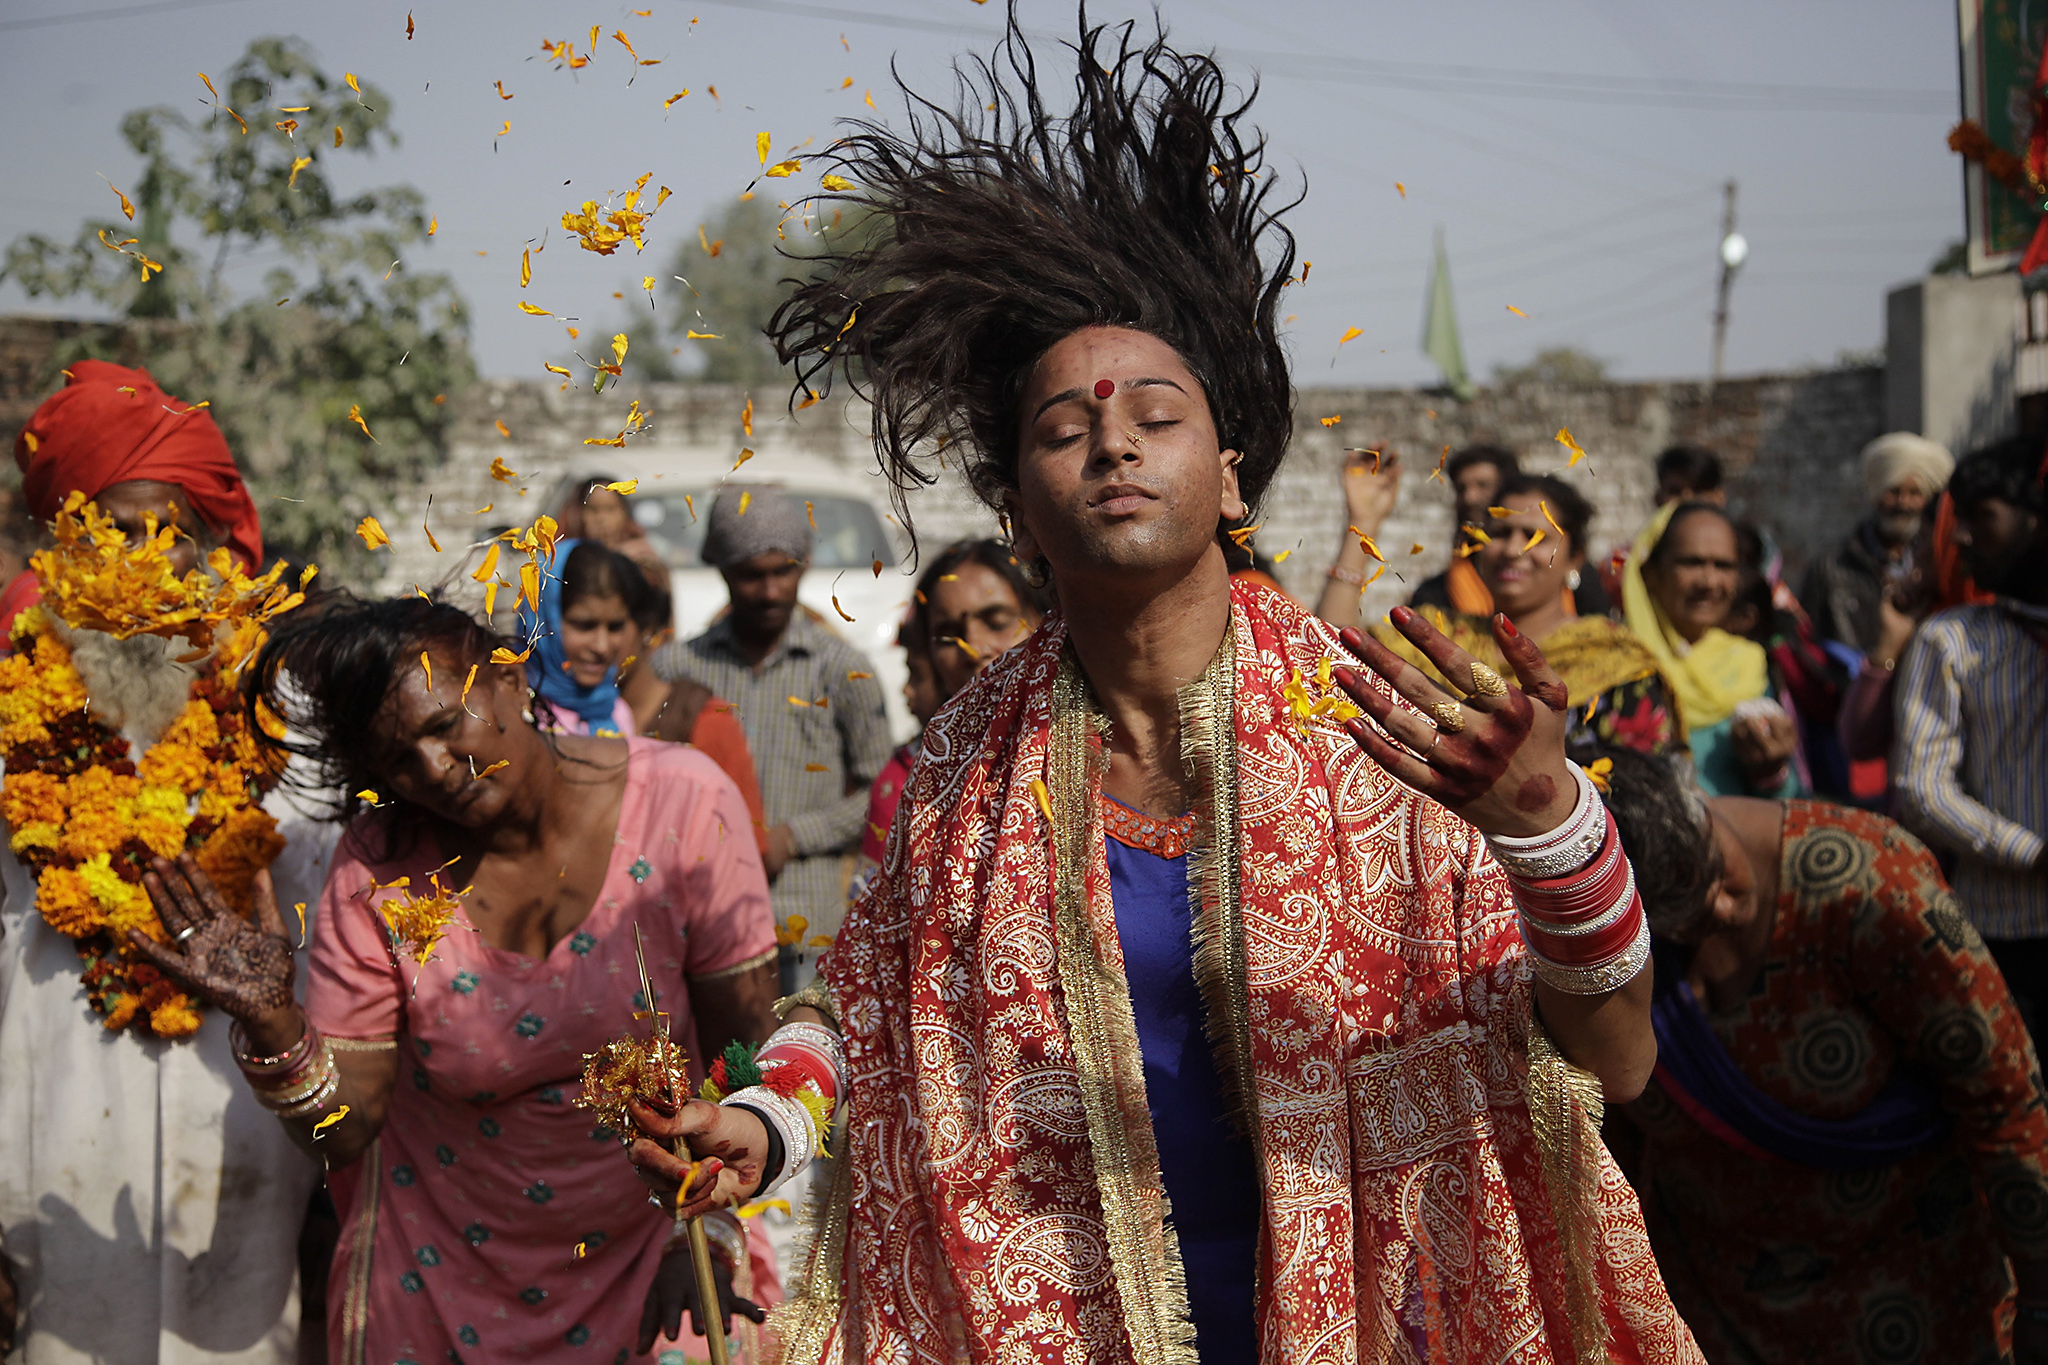 Devotees whirl their head as a ritualistic performance during the annual Jhiri Fair at Kanachack village, outskirts of Jammu, India, Monday, Nov.14, 2016. According to the villagers,  the fair is held in memory of Baba Jitu, an honest farmer who killed himself since he was not prepared to submit to the unjust demands of a landlord who wanted him to part with his crop. (AP Photo/Channi Anand)